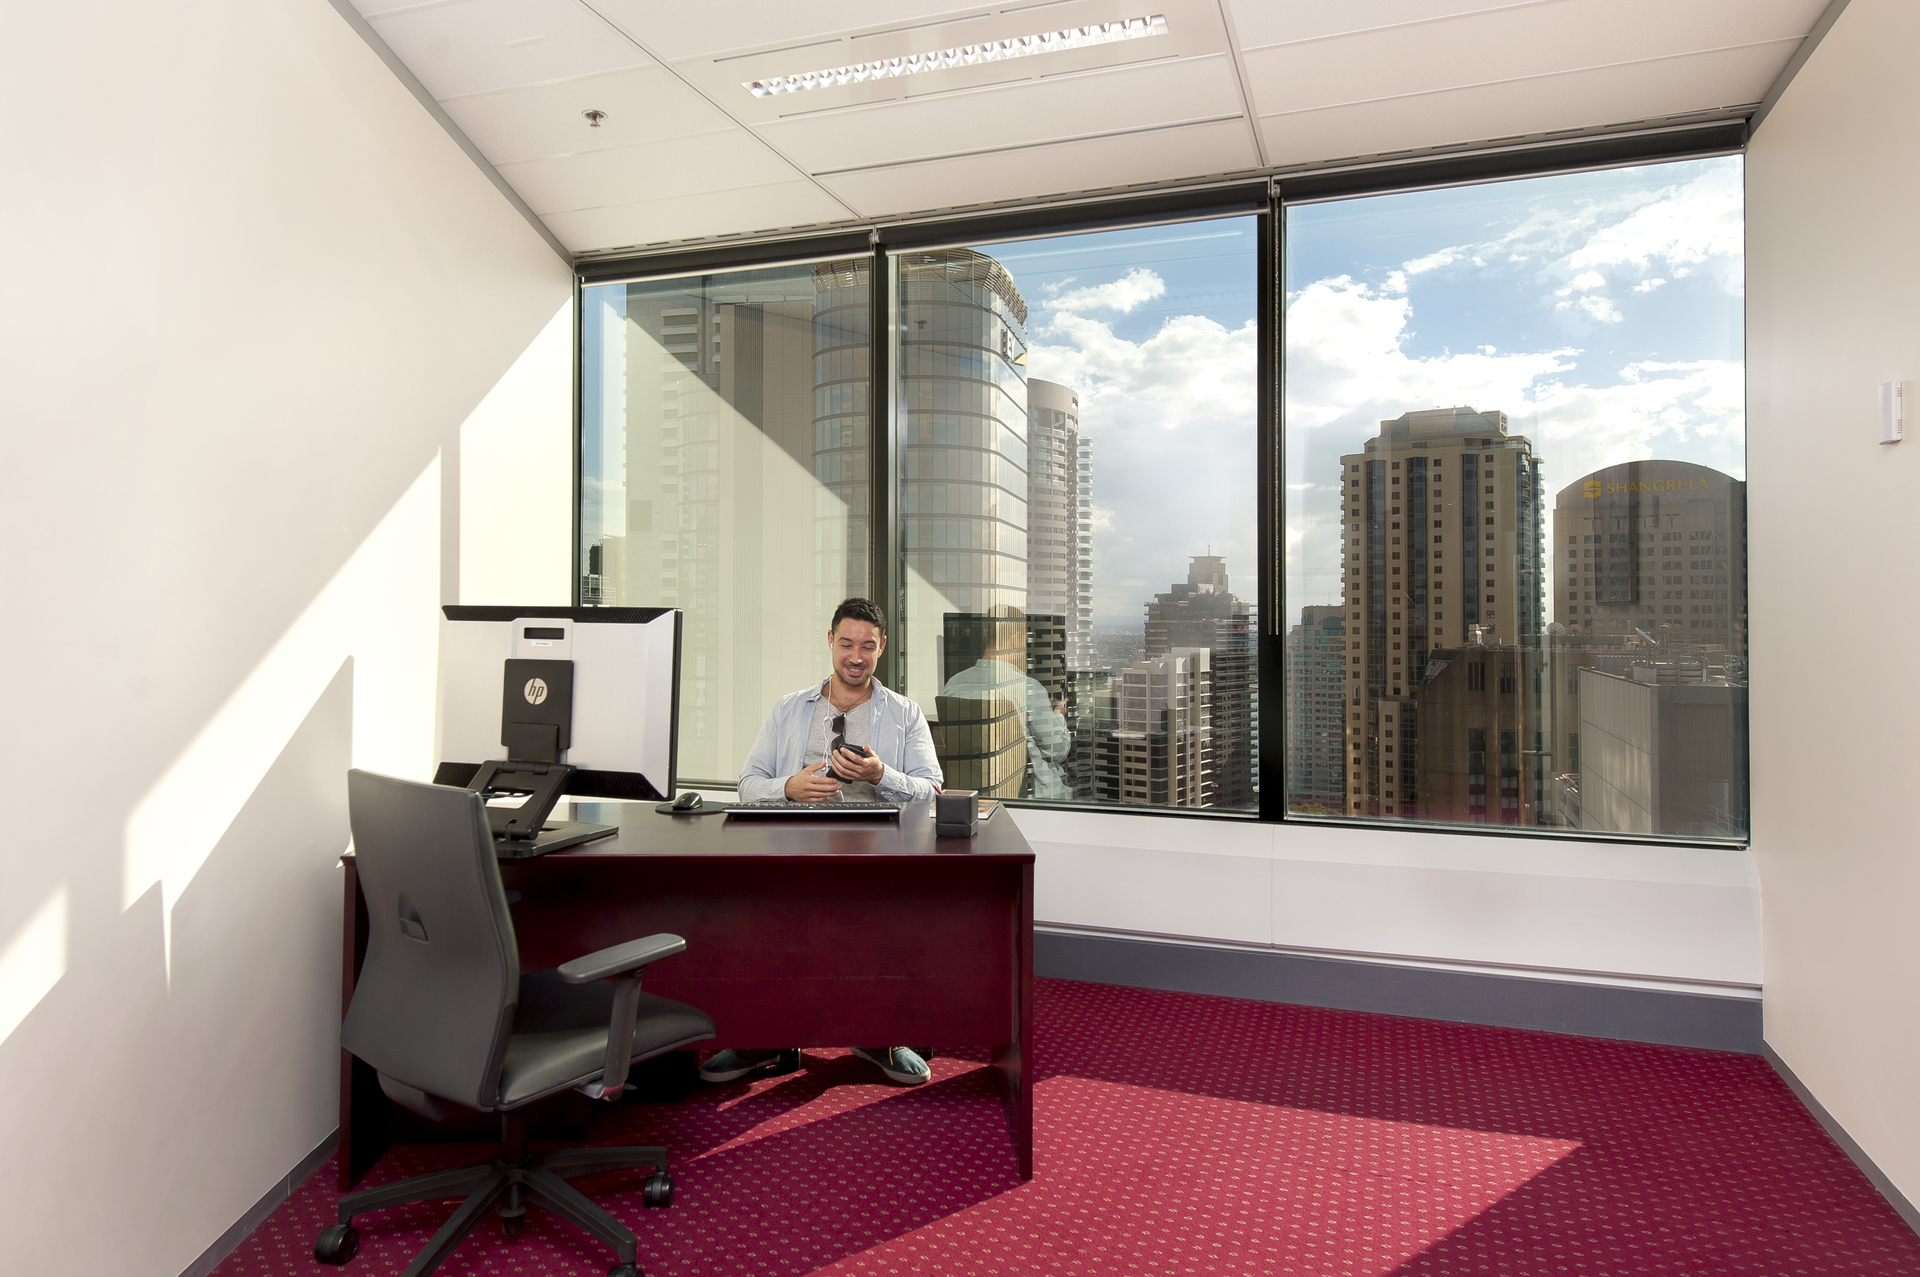 NICE OFFICES LOCATED IN SYDNEY CITY PRESTIGIOUS BUILDING WITH  IMPRESSIVE VIEWS.